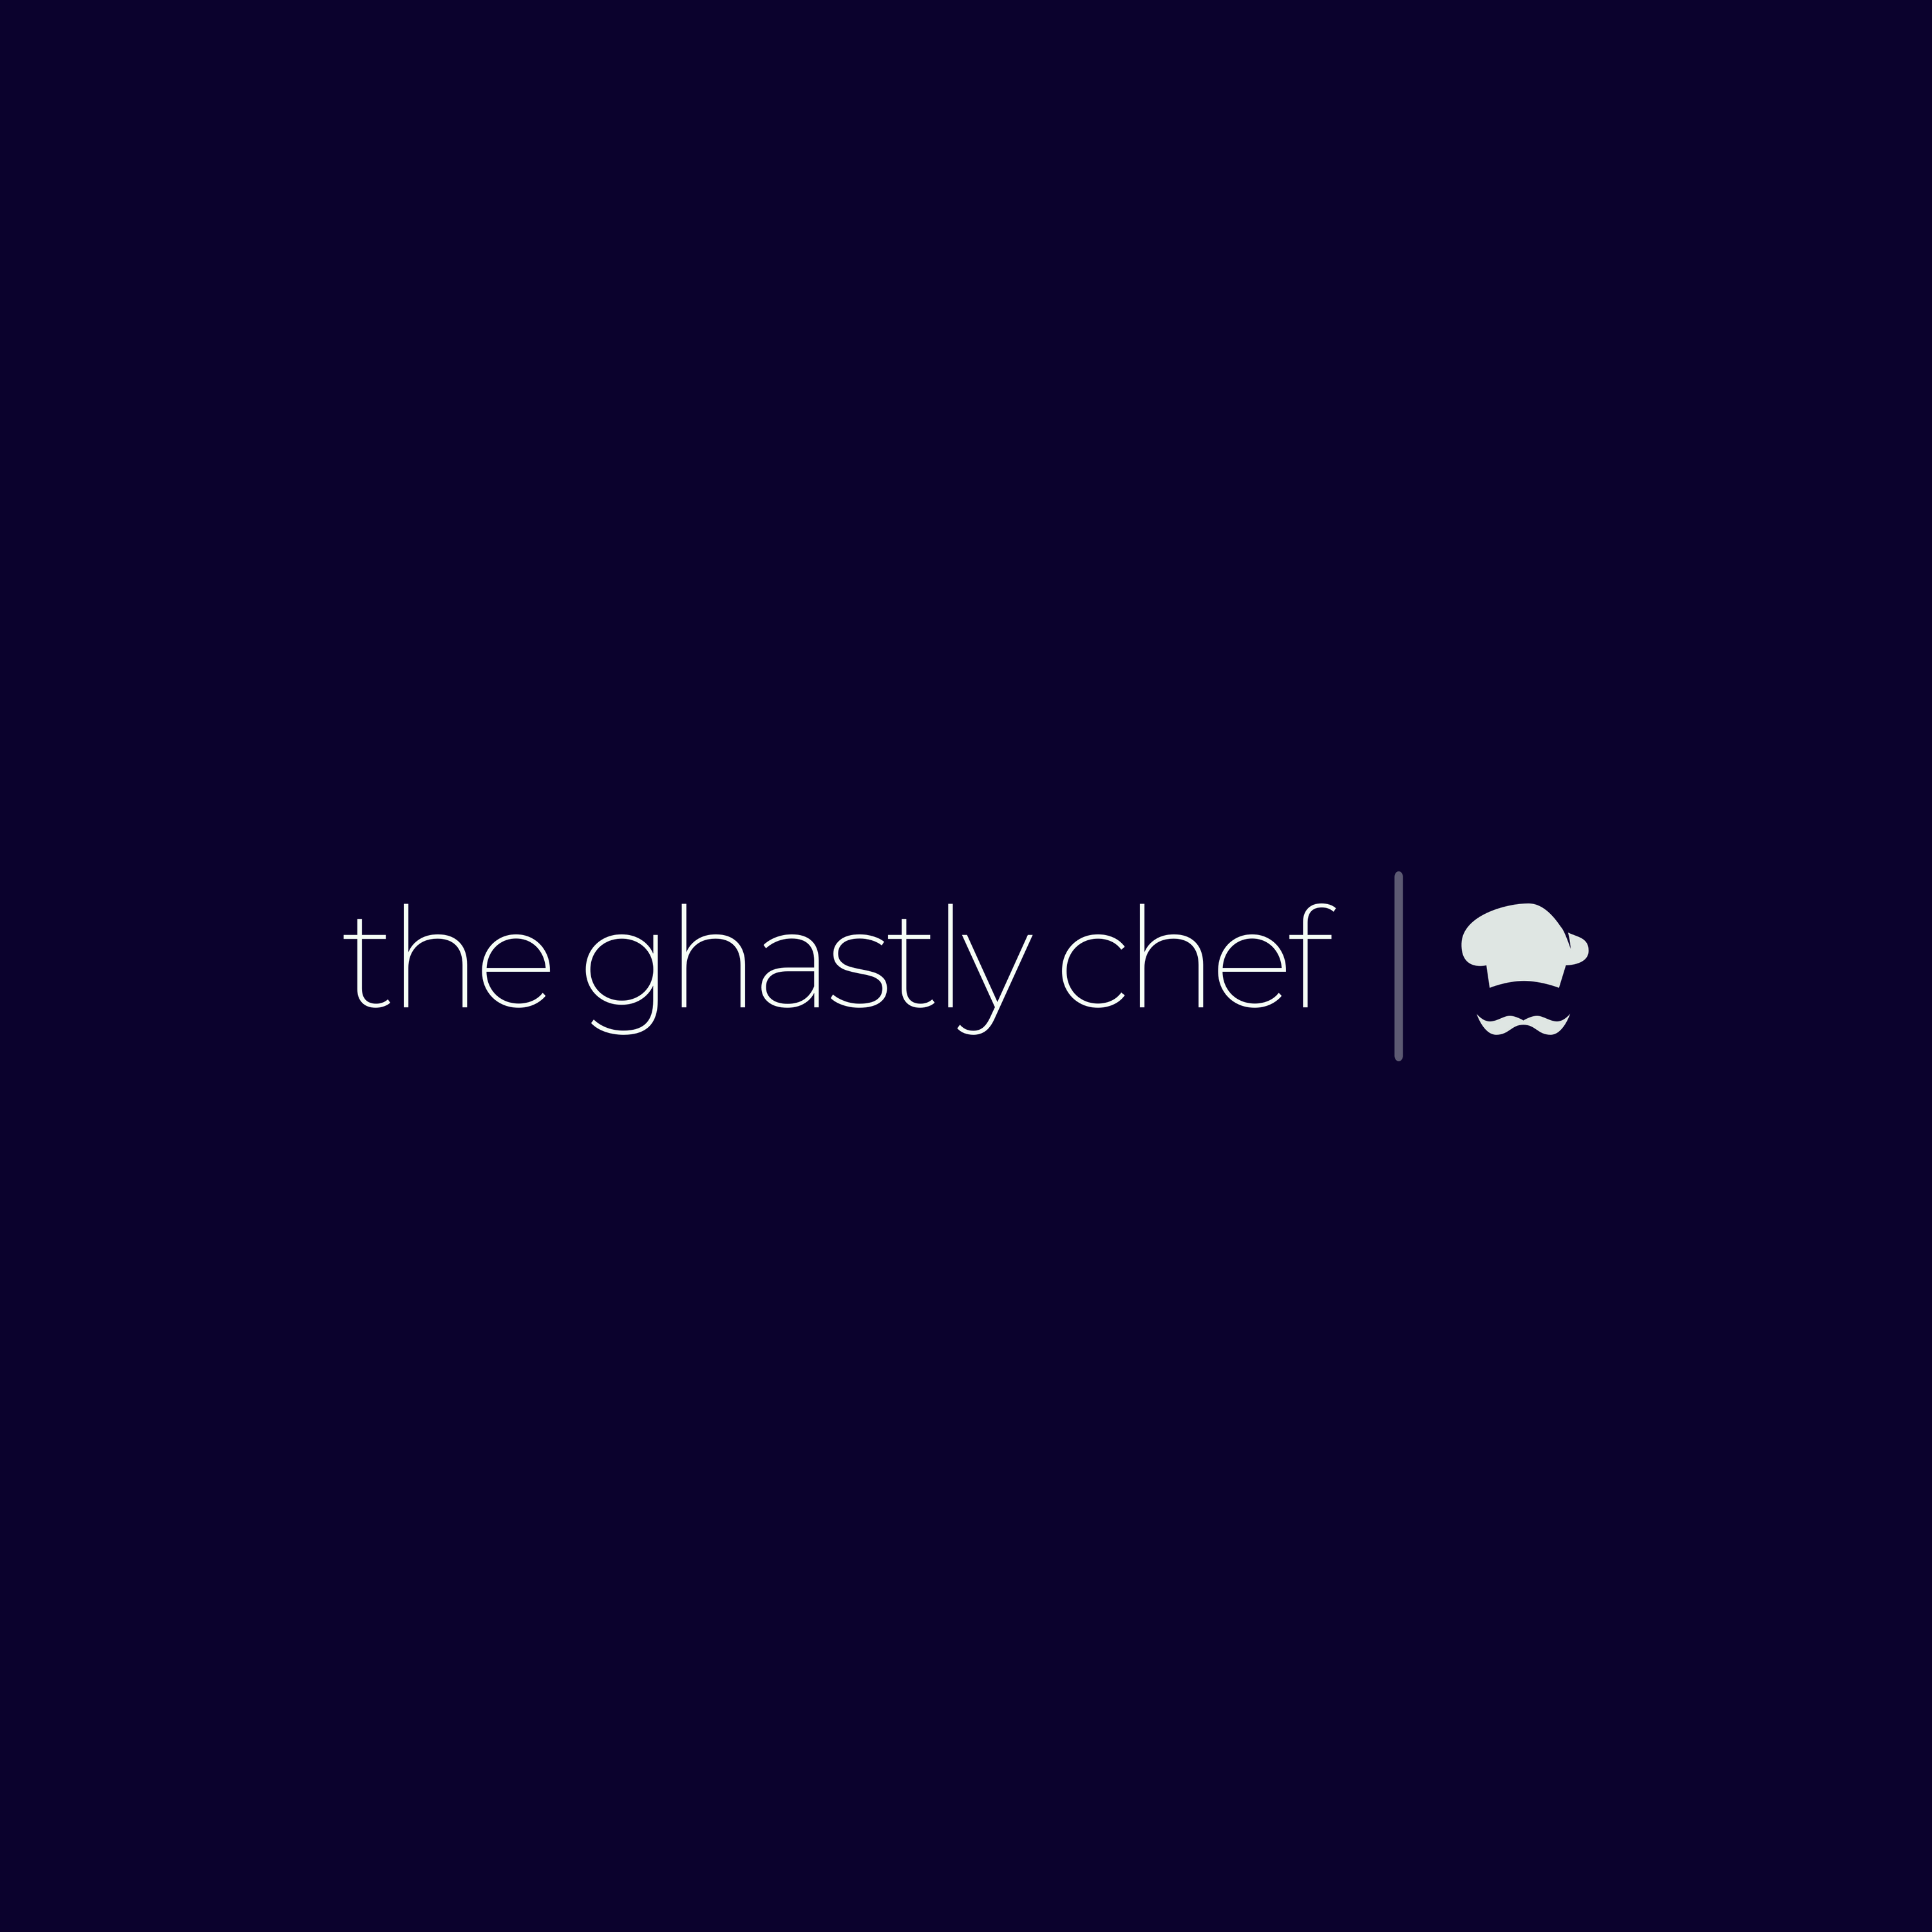 the ghastly chef